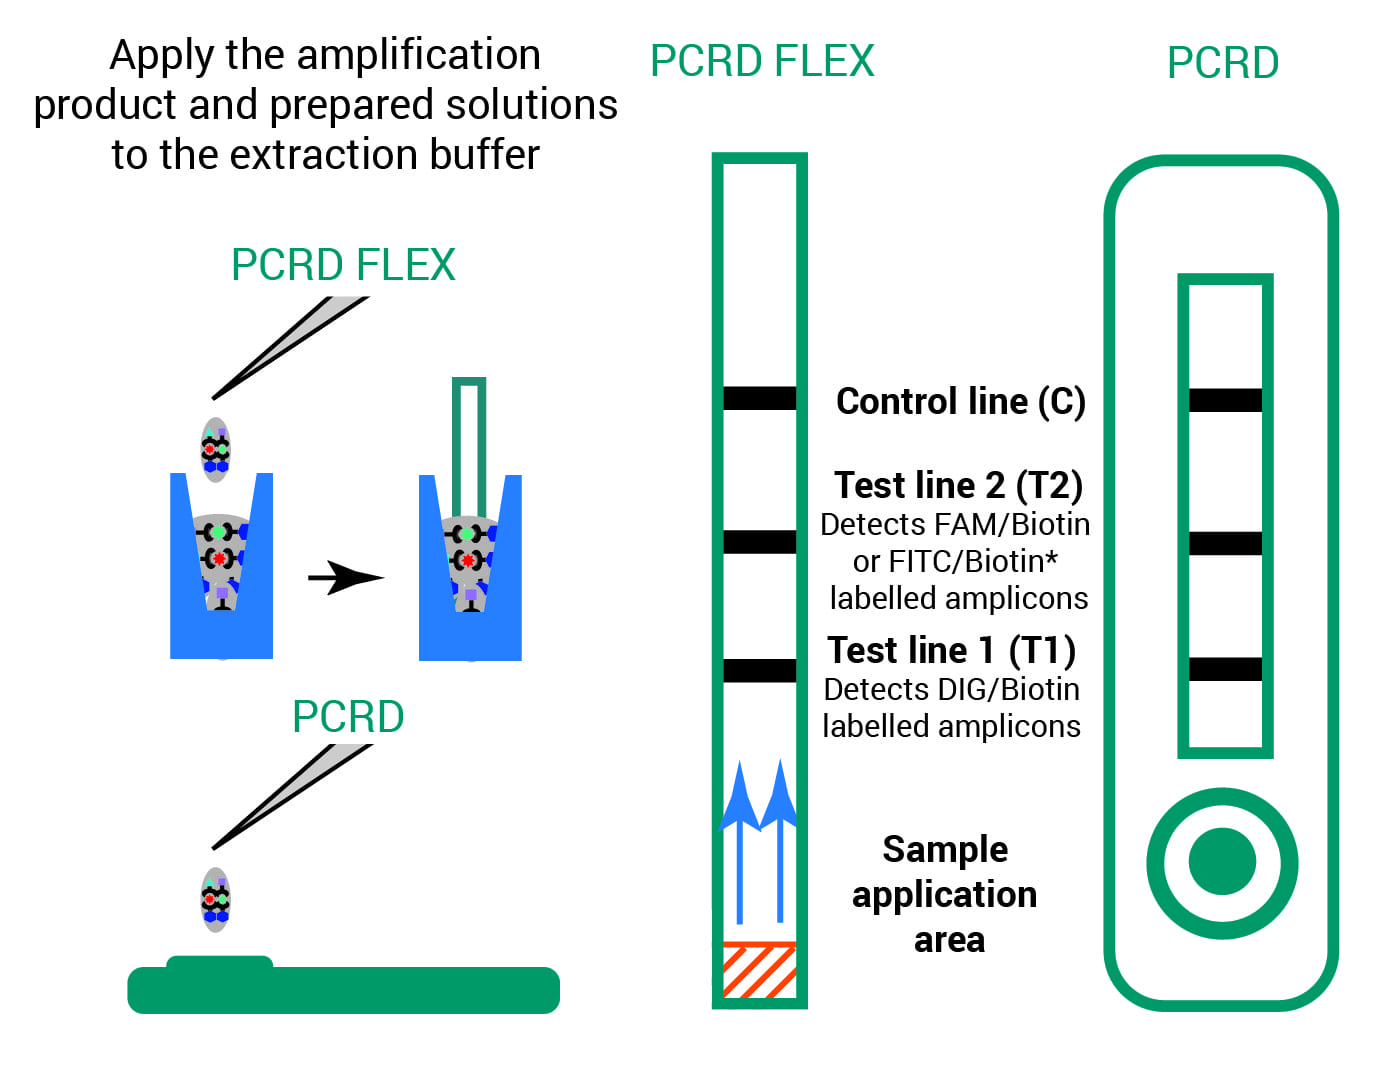 User guidelines for operating PCRD and PCRD FLEX NALFIA tests